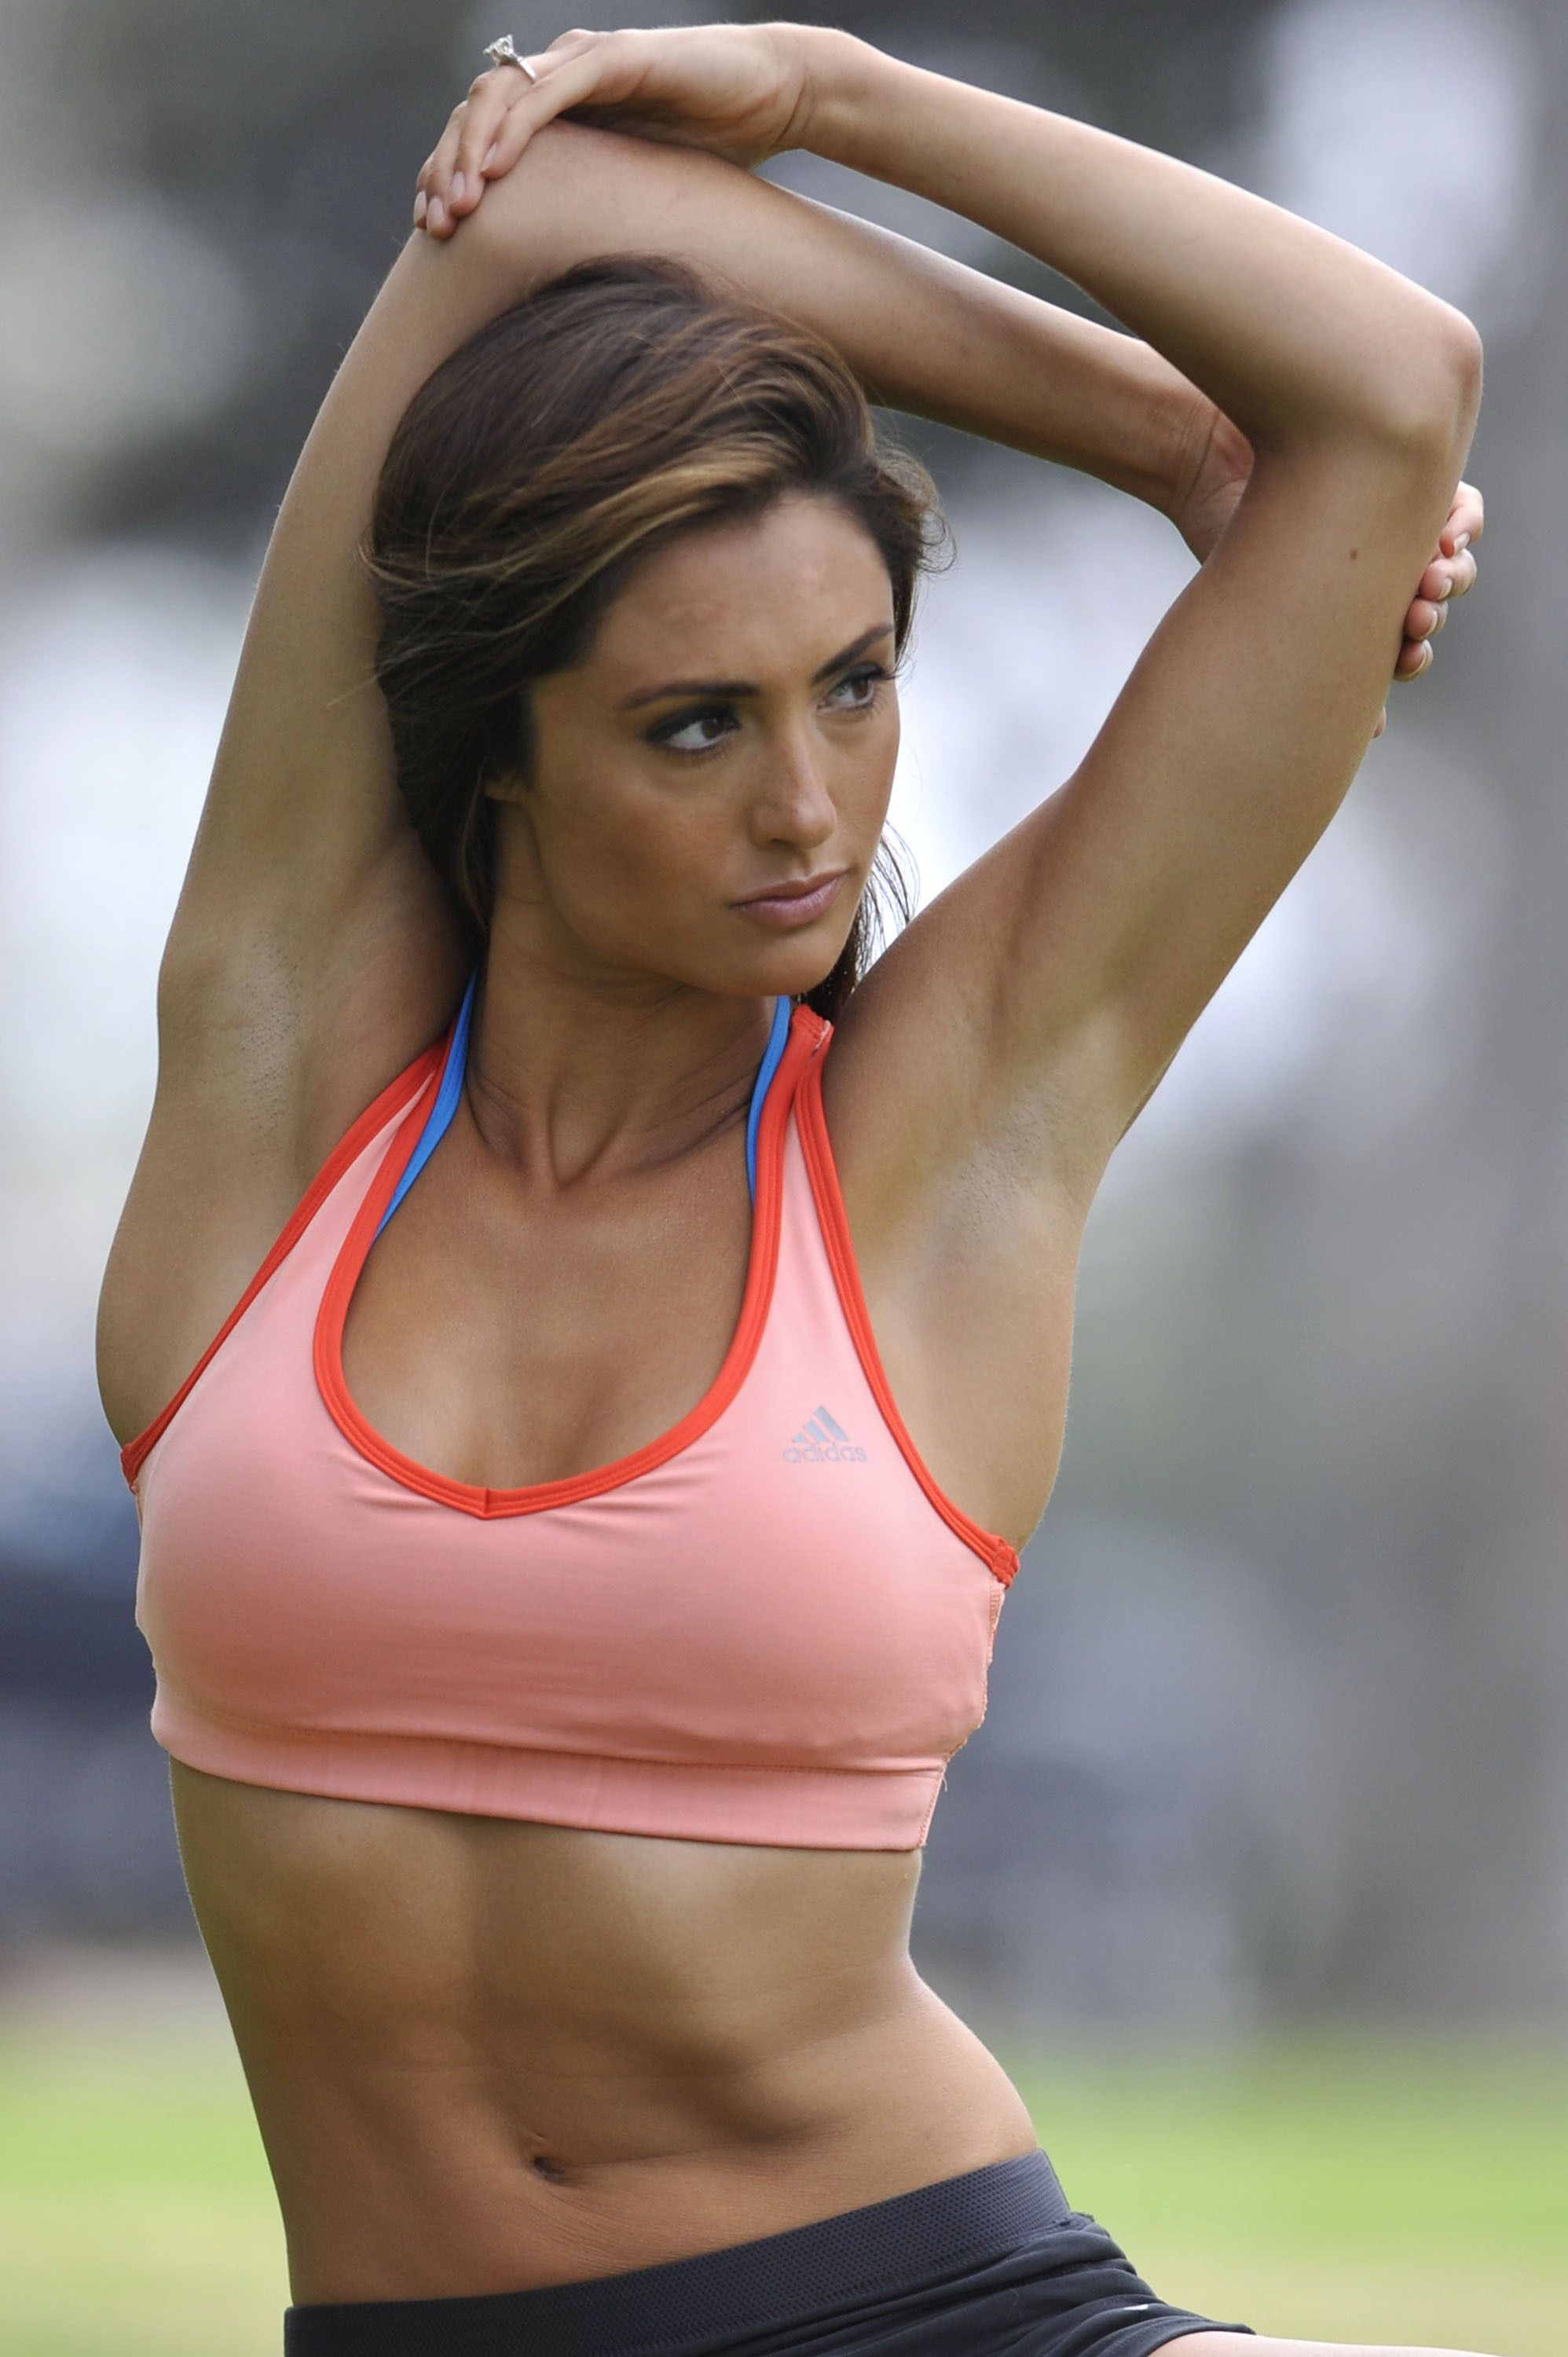 American Actress Katie Cleary Imagems